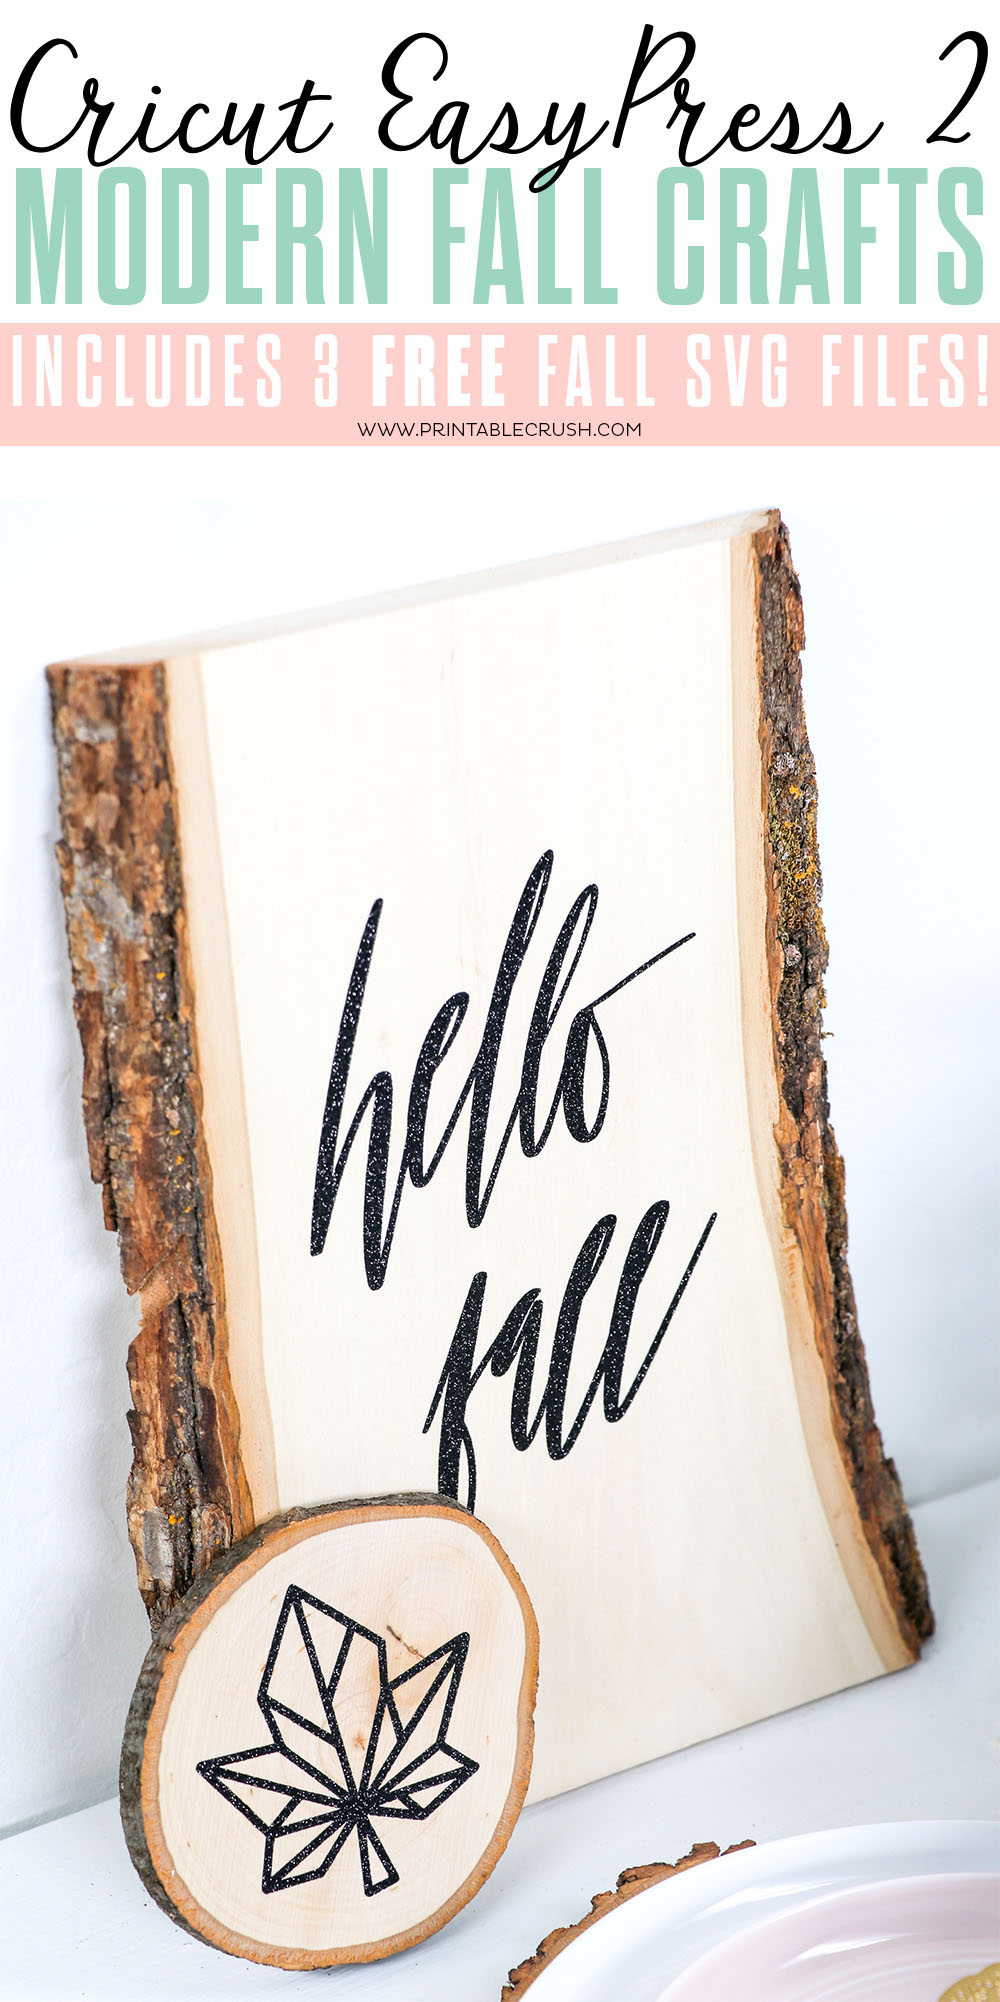 Make these pretty Wood signs and coasters with the Cricut EasyPress 2 and FREE SVG Files!